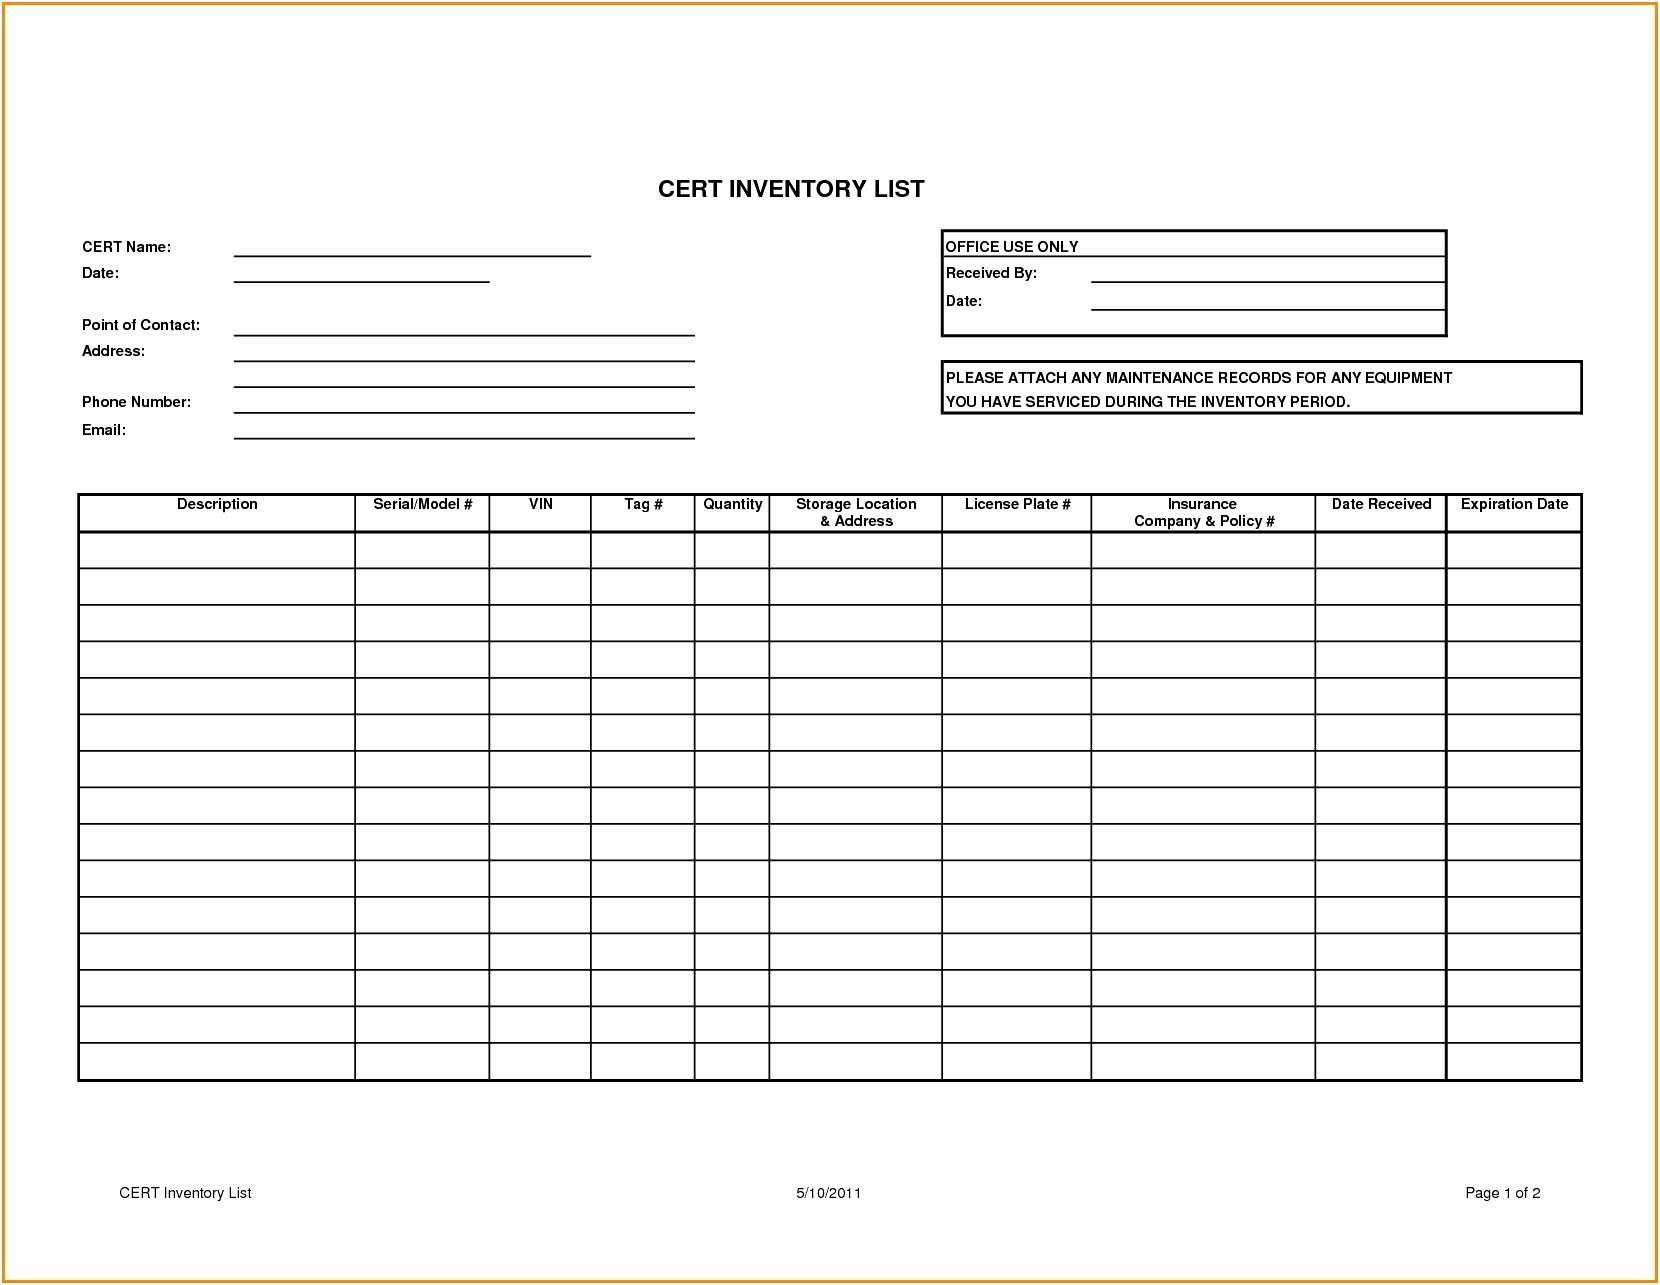 Excel Stock Template How To Make A Spreadsheet For Inventory For With How To Make A Spreadsheet For Inventory